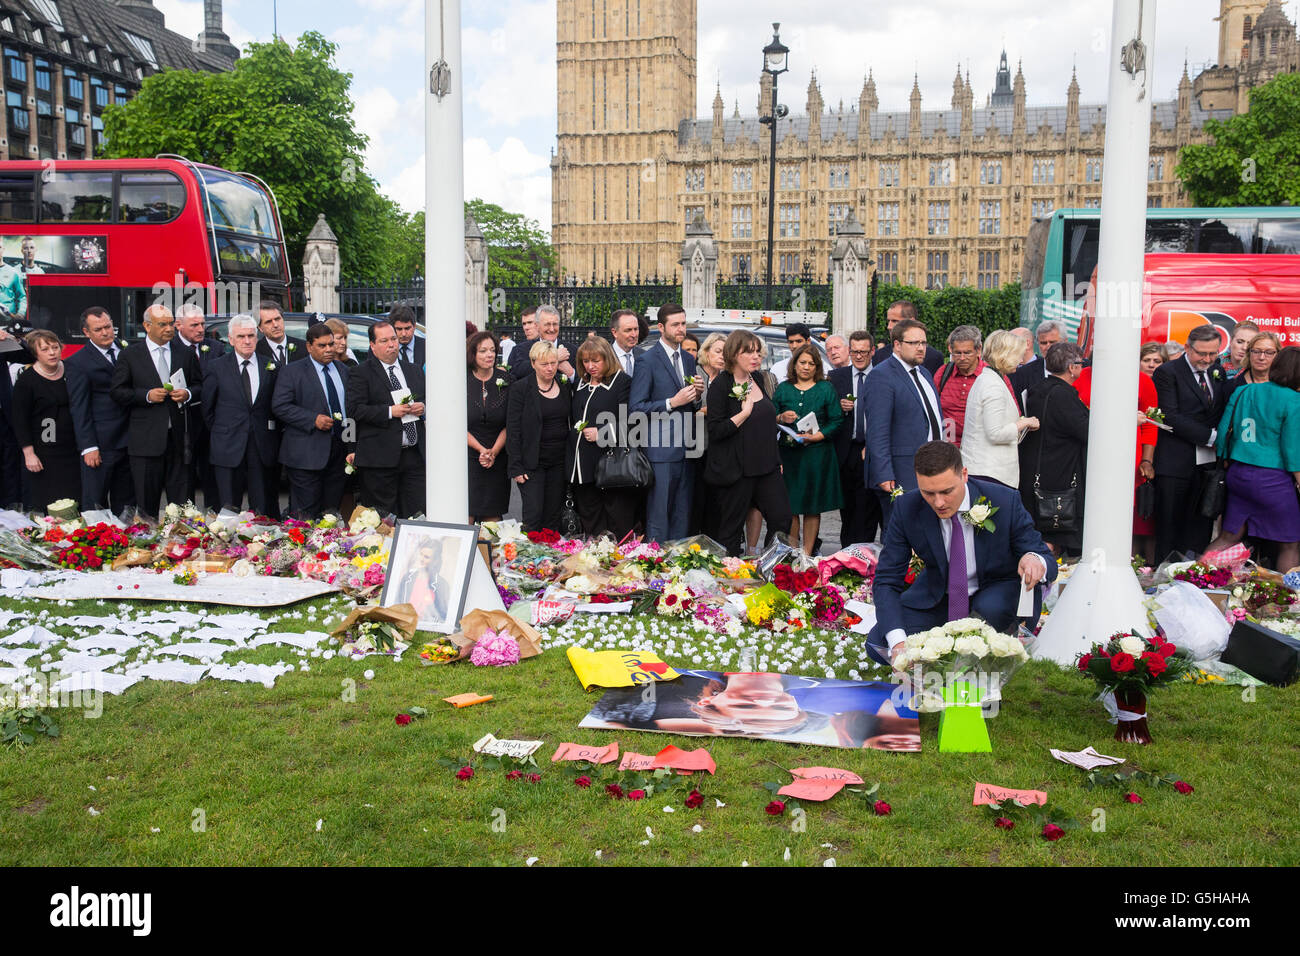 Wes Streeting MP lays a wreath in memory of murdered Labour party MP Jo Cox outside Parliament - Stock Image